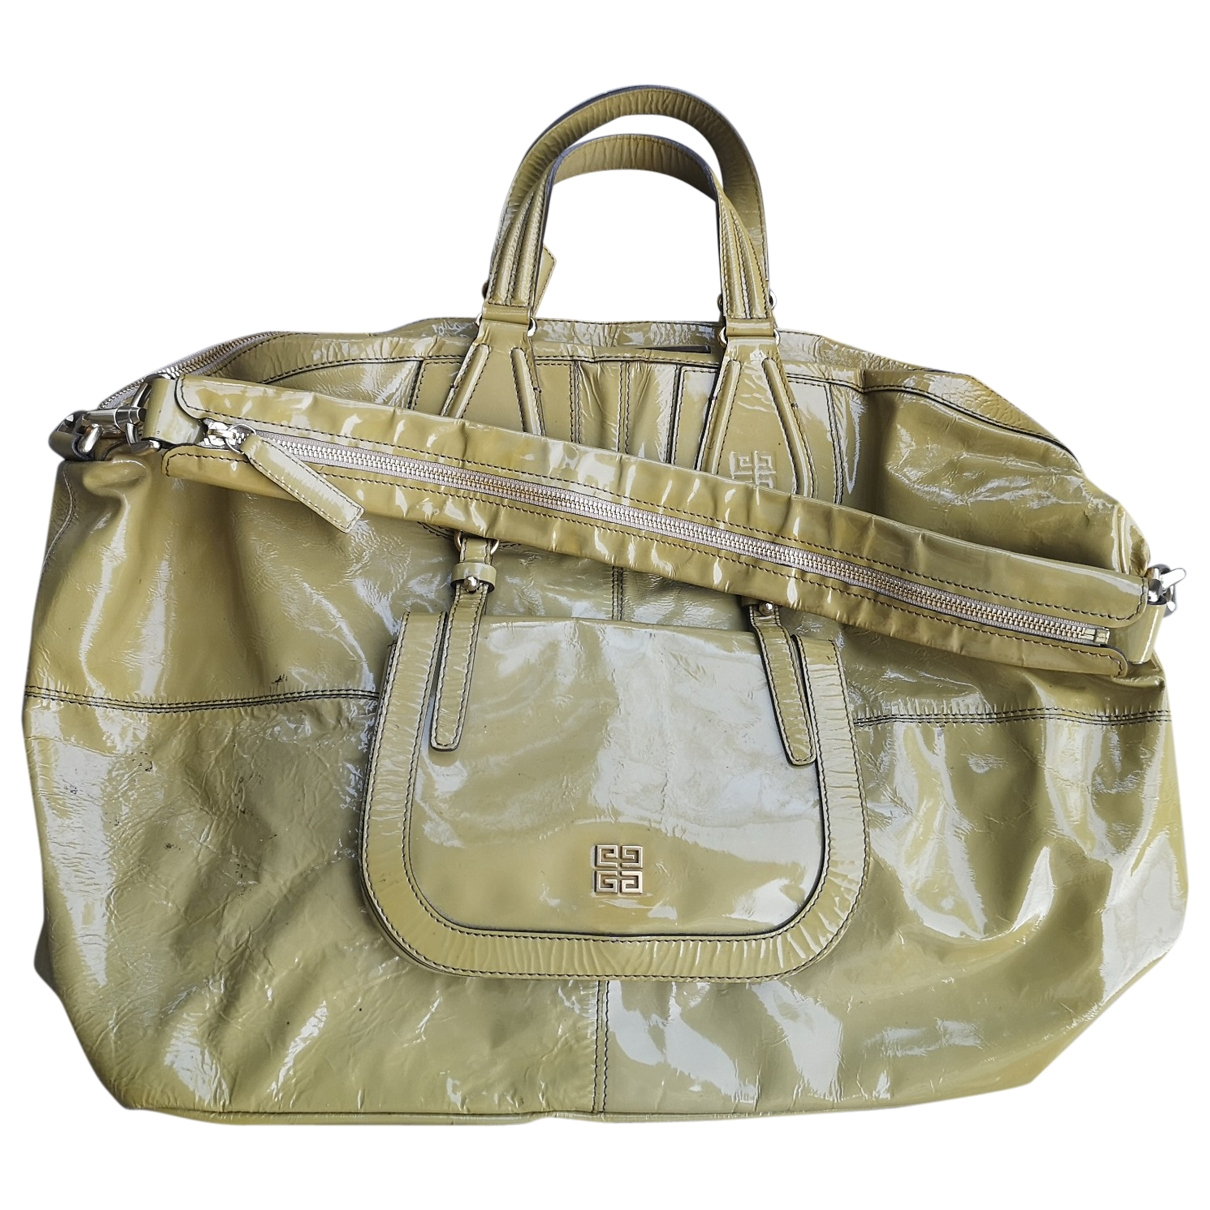 Givenchy \N Patent leather handbag for Women \N